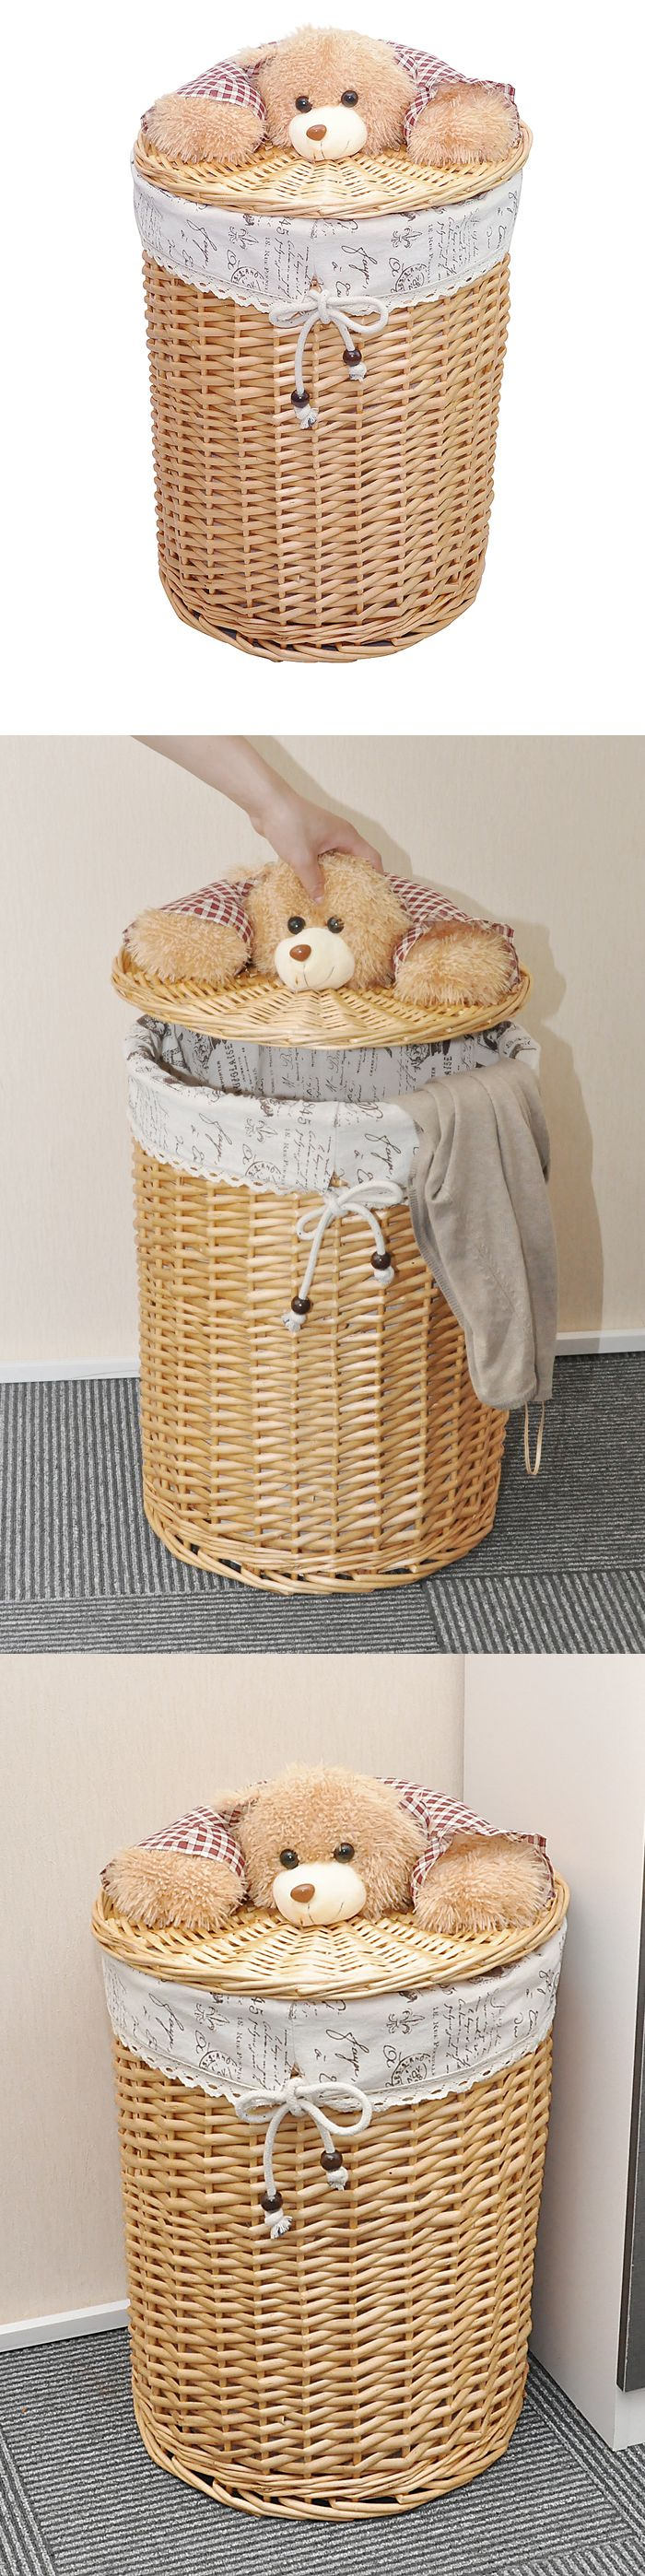 Round Rattan Wicker Laundry Hamper with Cotton Lining and Bear Lid, Hand Woven